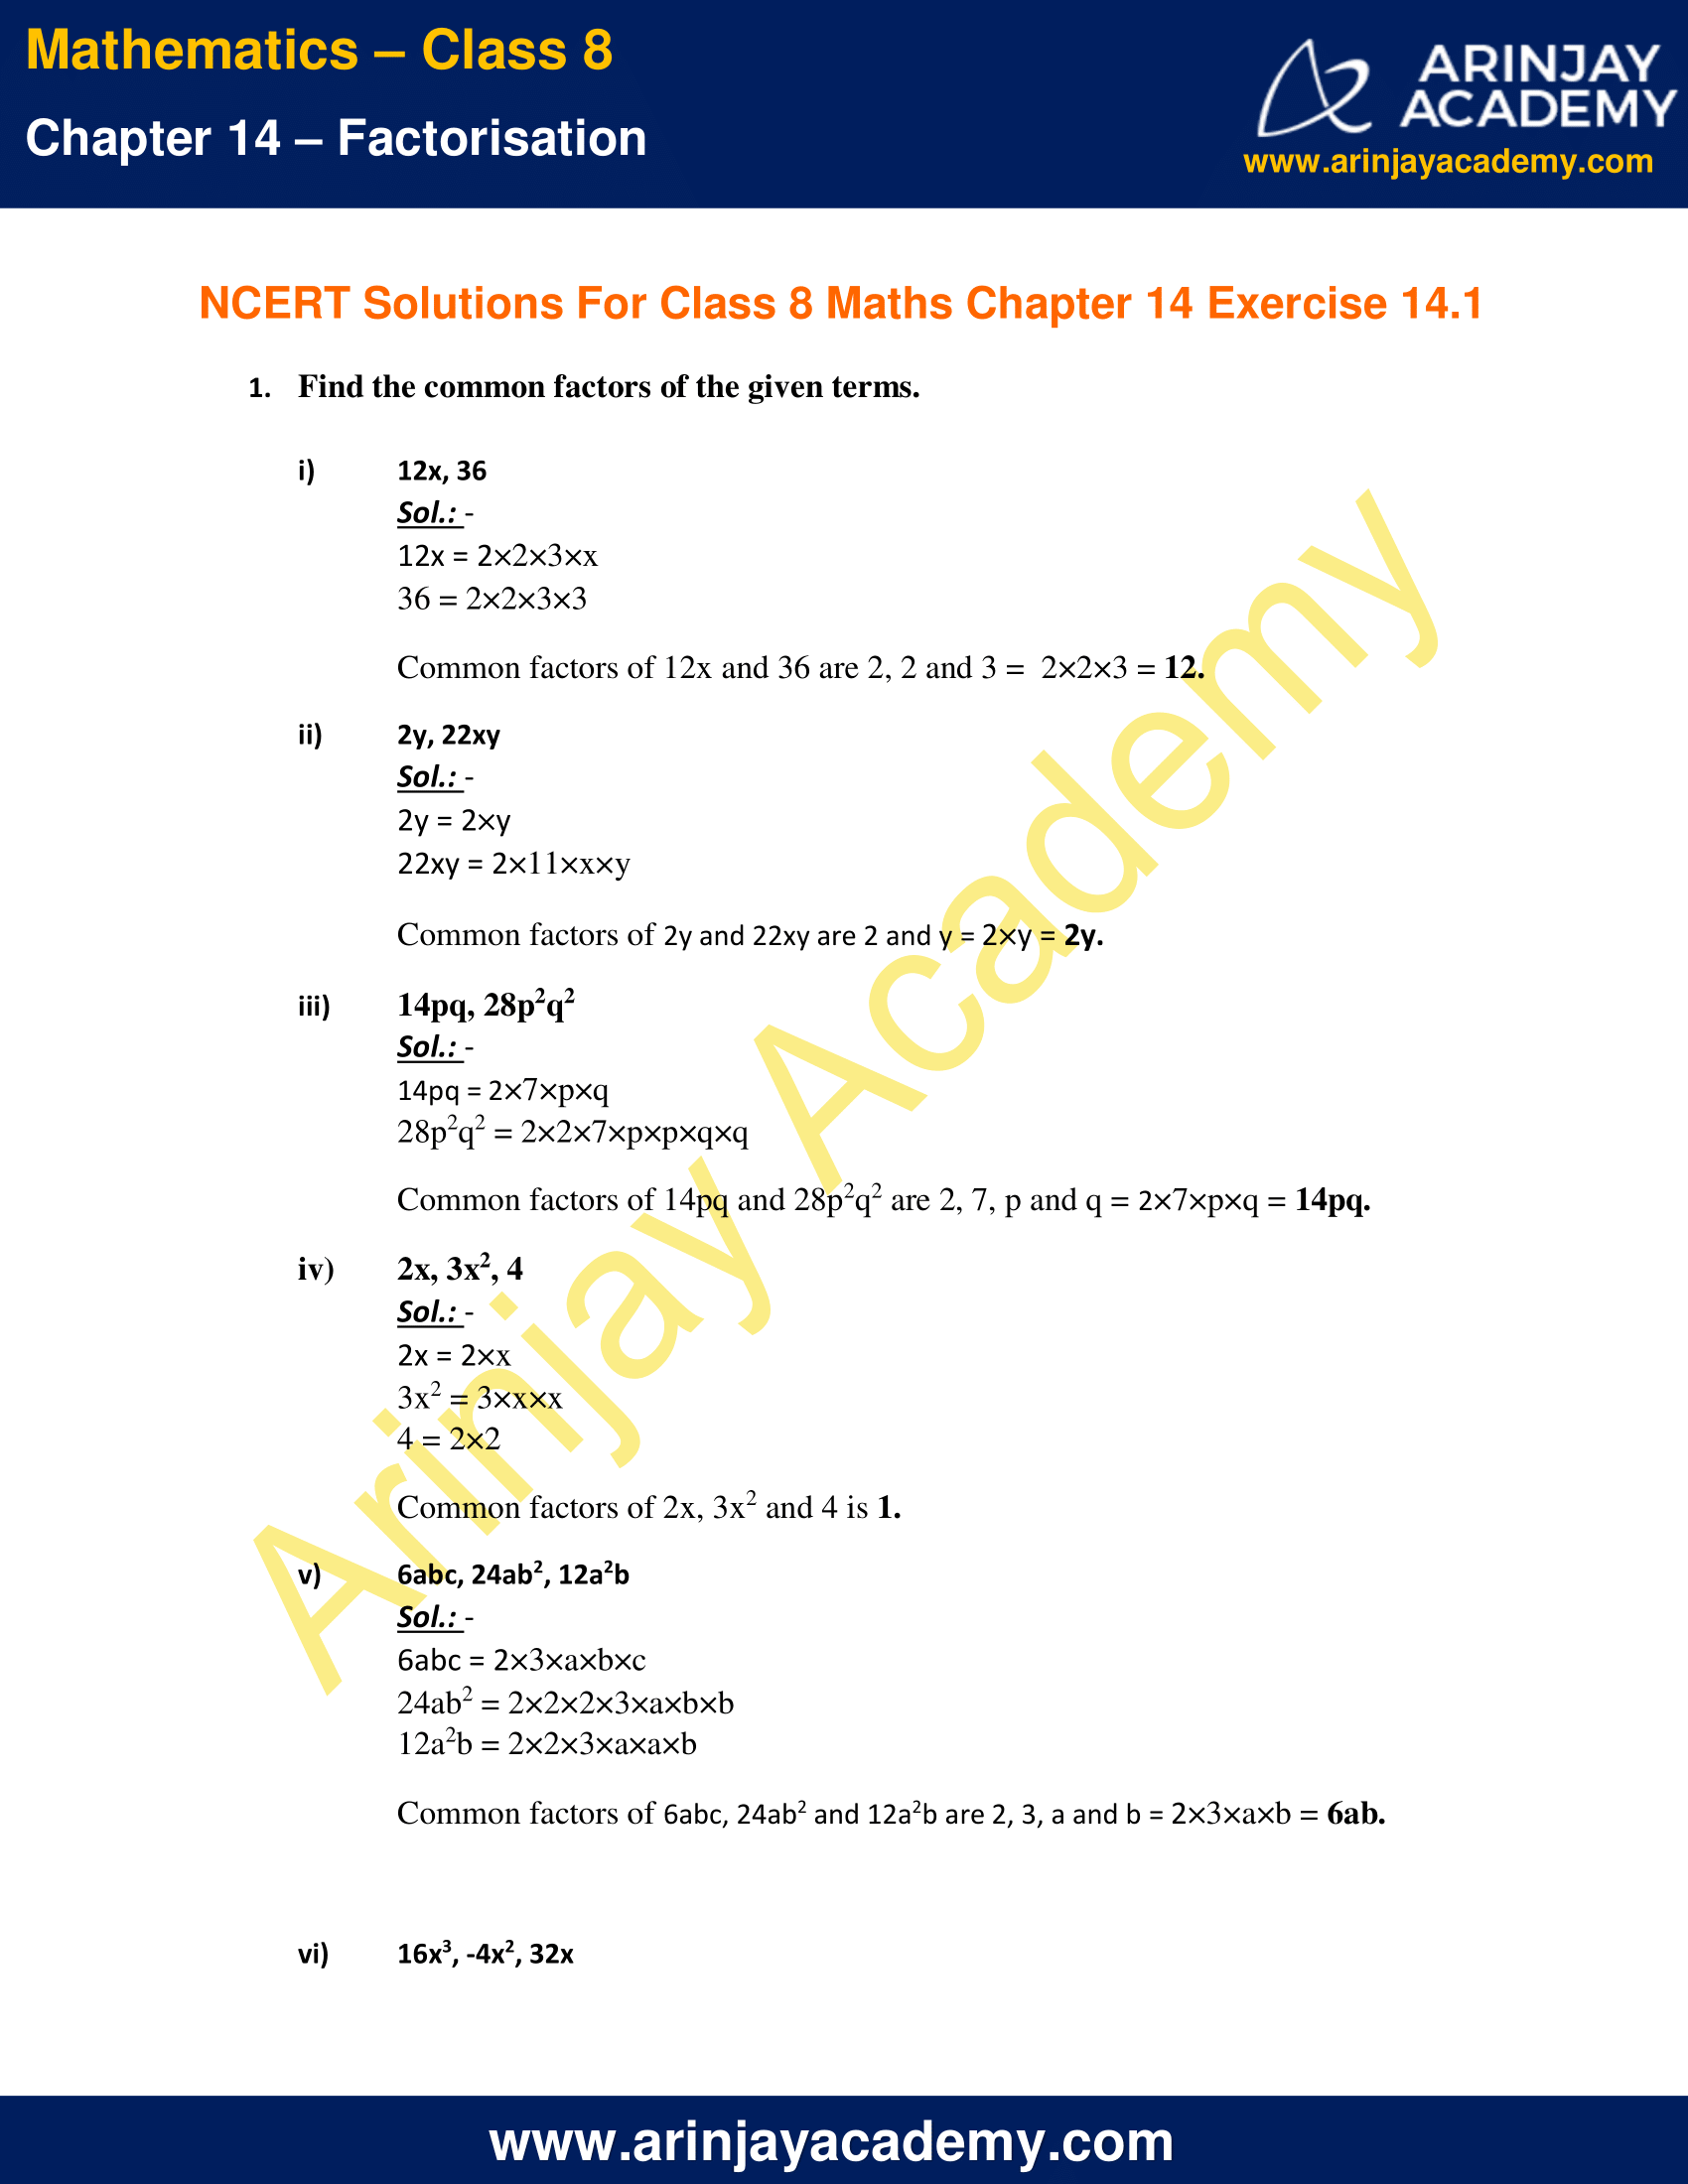 NCERT Solutions for Class 8 Maths Chapter 14 Exercise 14.1 image 1